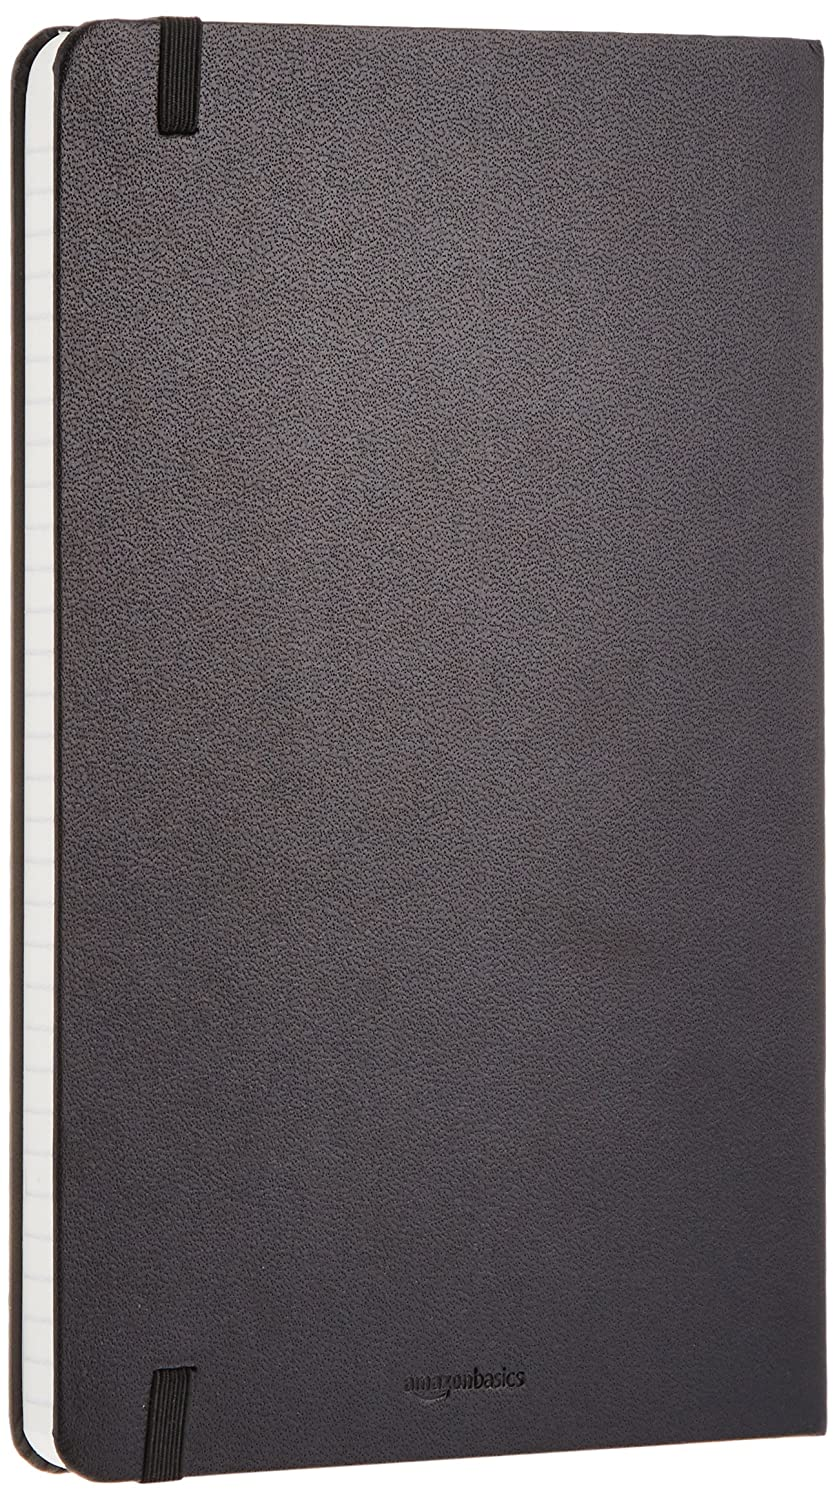 AmazonBasics Classic Lined Notebook 240 Pages Hardcover  Ruled